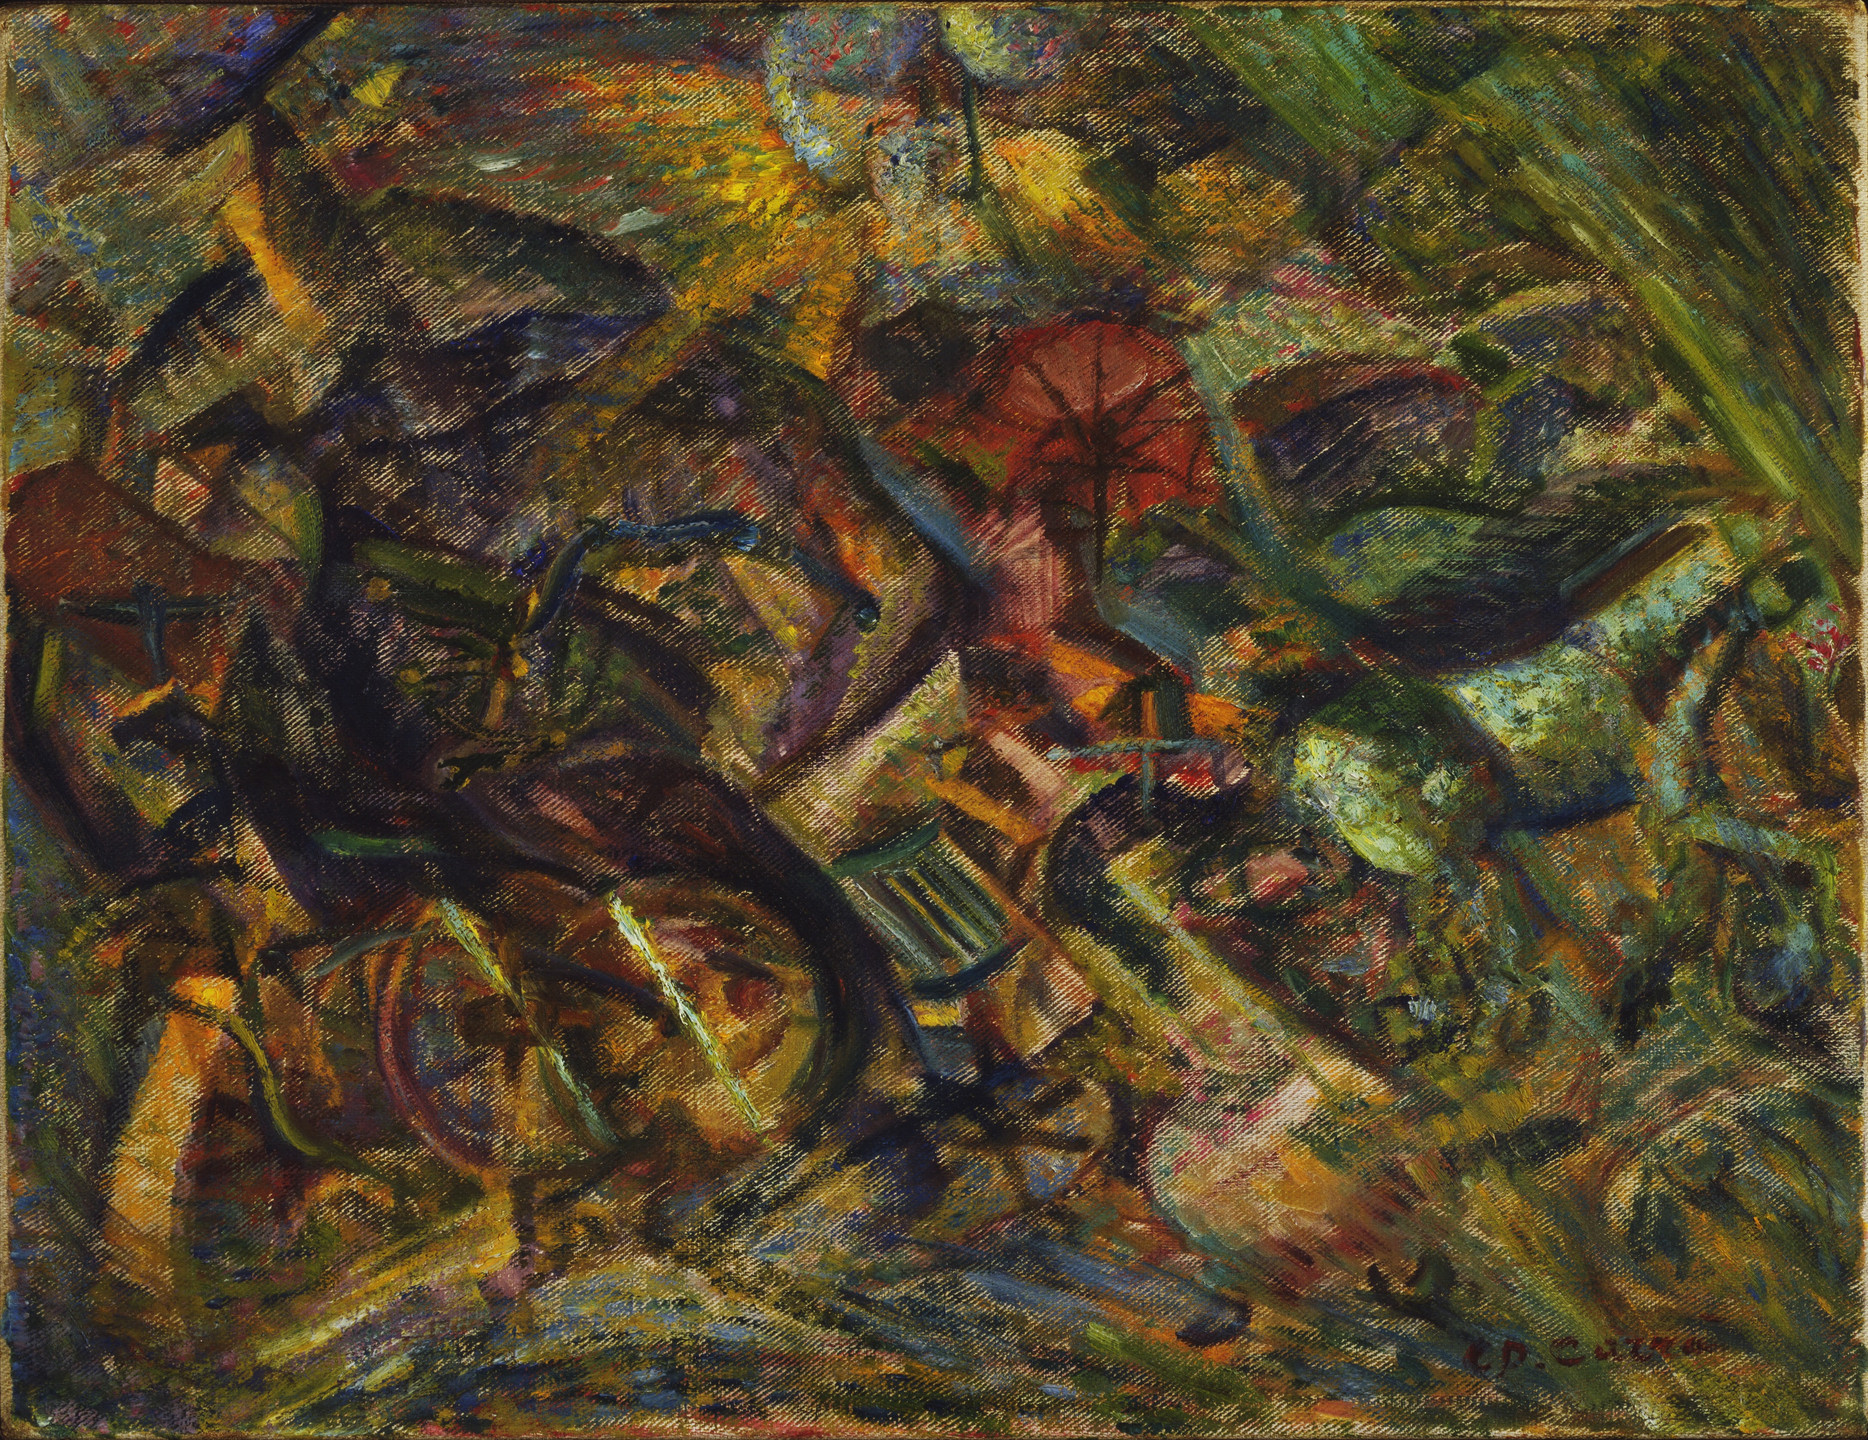 Carlo Carrà. Jolts of a Cab. 1911